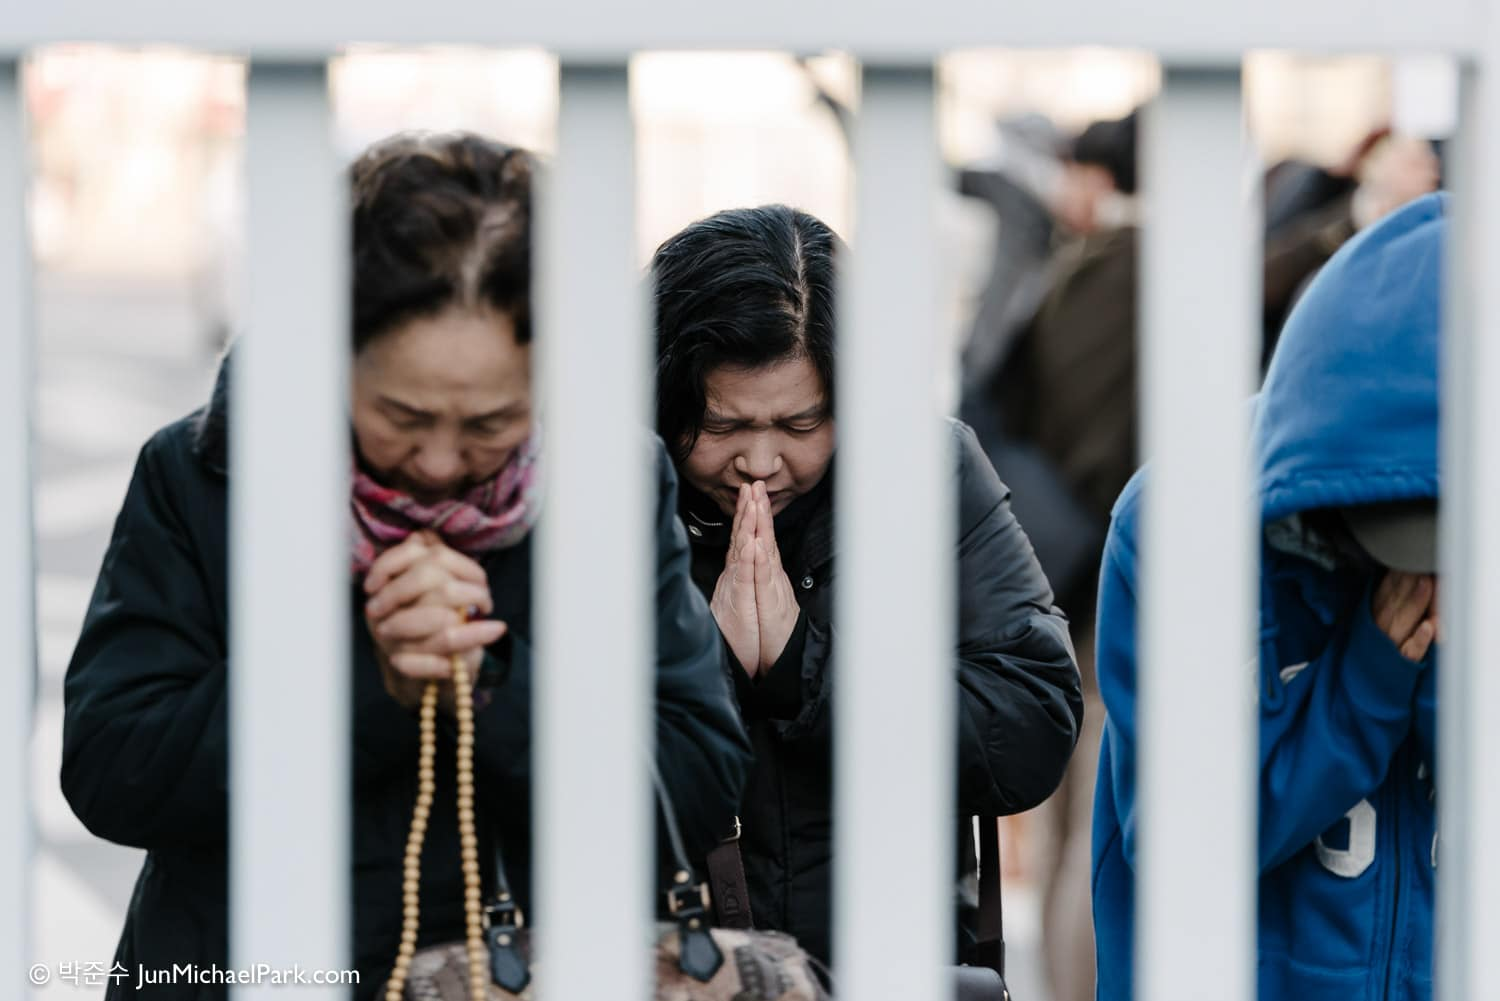 Mothers and grandmothers of examinees pray outside the school gate while their children take the Korea College Entrance Exam. Seoul, 2014.